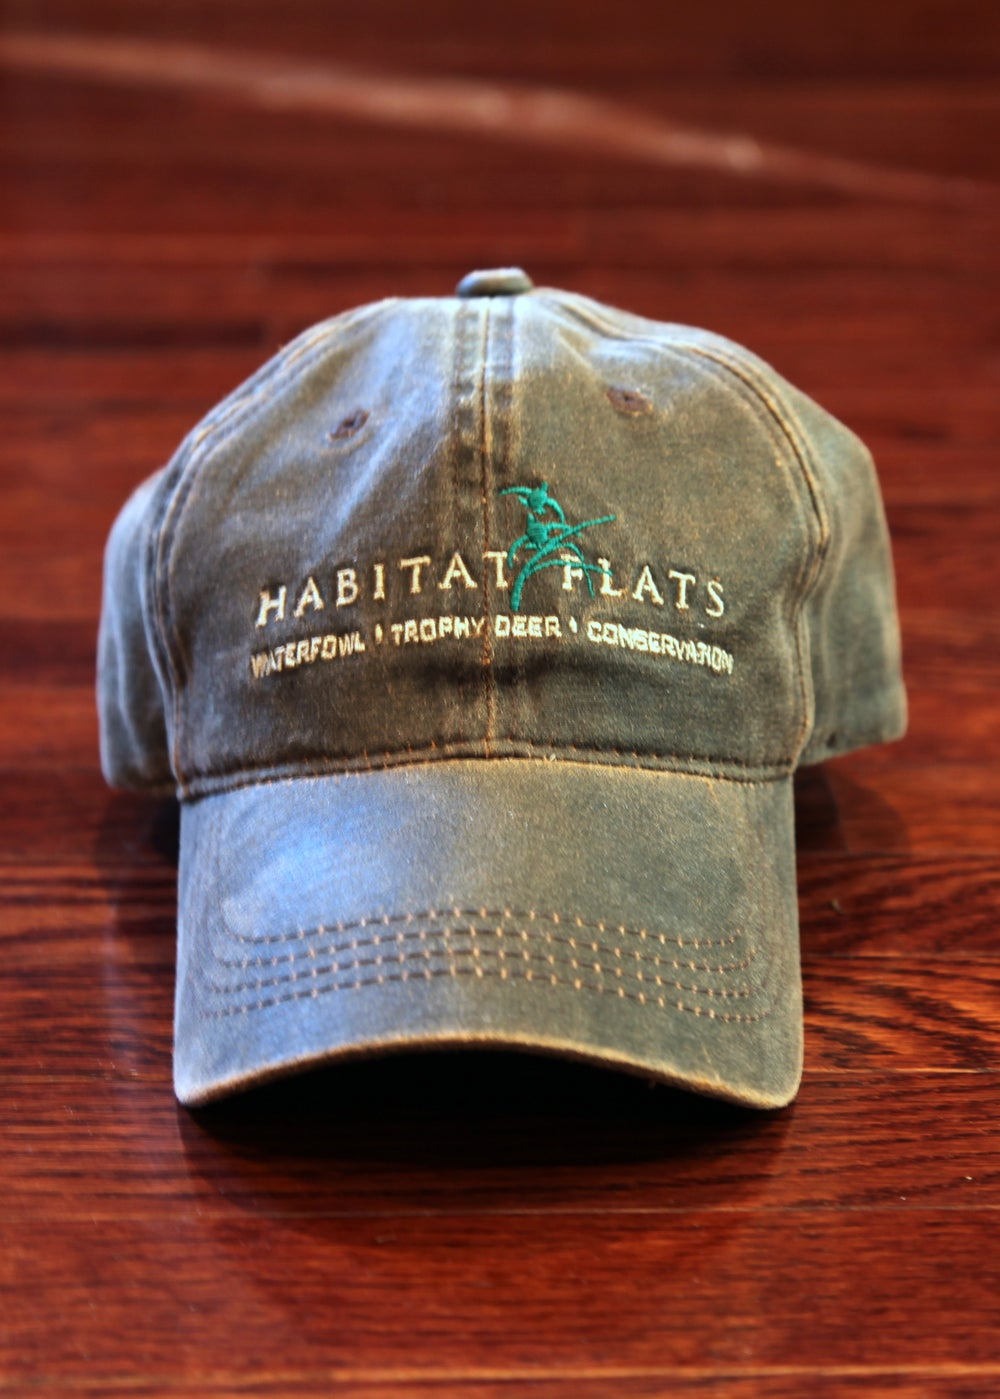 Image of Habitat Flats Full Logo Waxed Canvas Hat